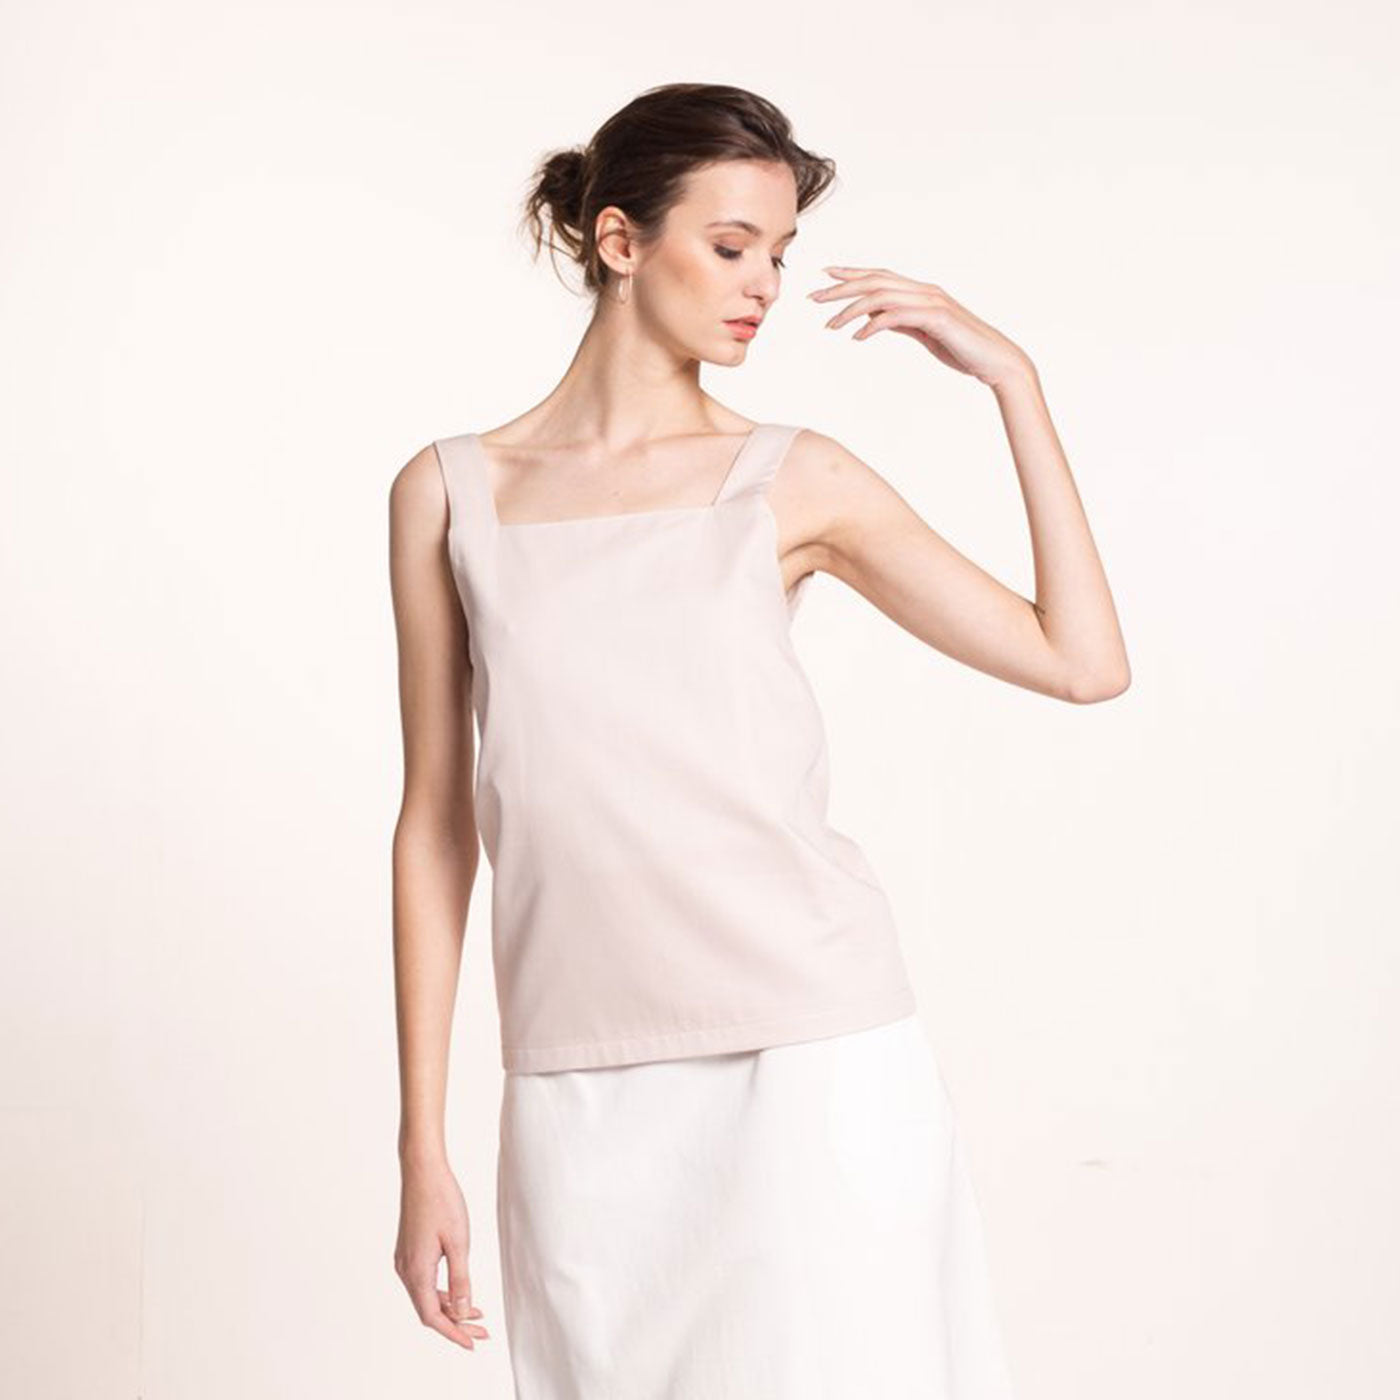 The model wears a rose-beige, sustainable, organic cotton, wide straps top and a white skirt.